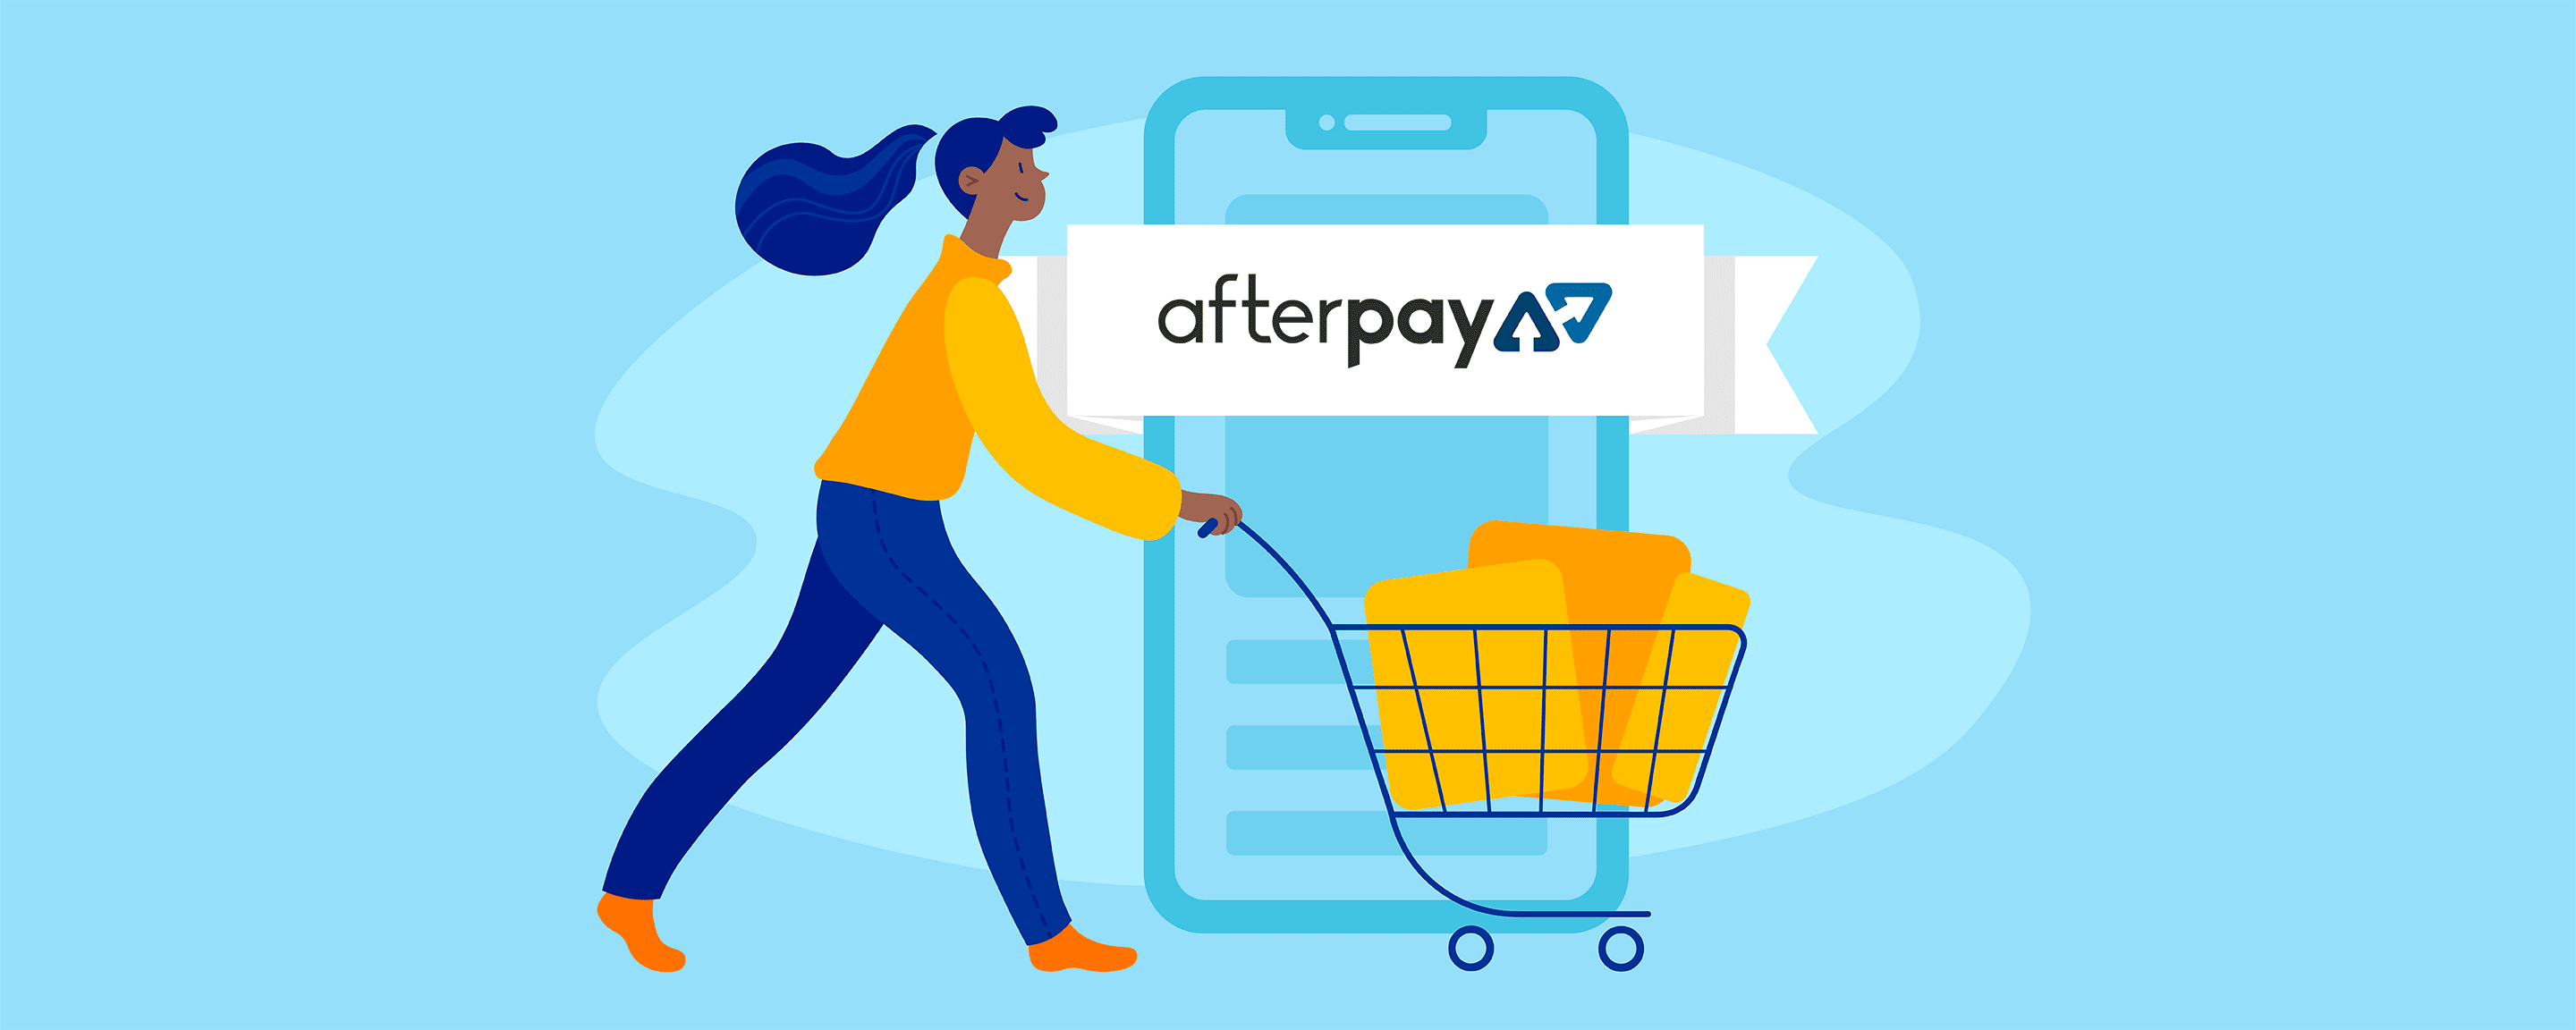 This is a cover image for the blog post on the Ecwid blog that announces Ecwid's integration with Afterpay, a popular Australian buy now, pay later provider